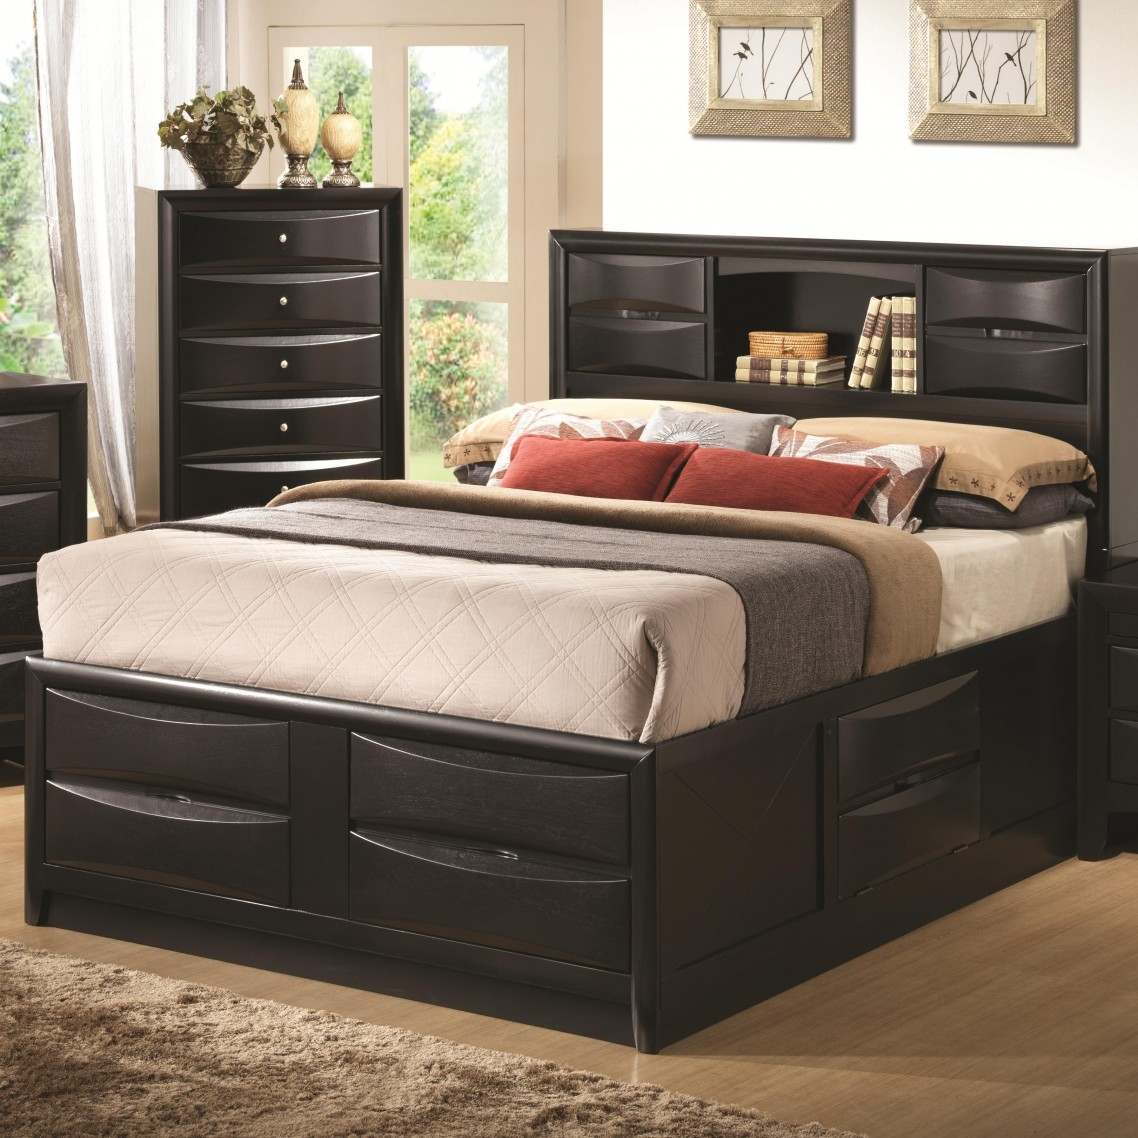 queen size bed frame with storage QXPCHLZ